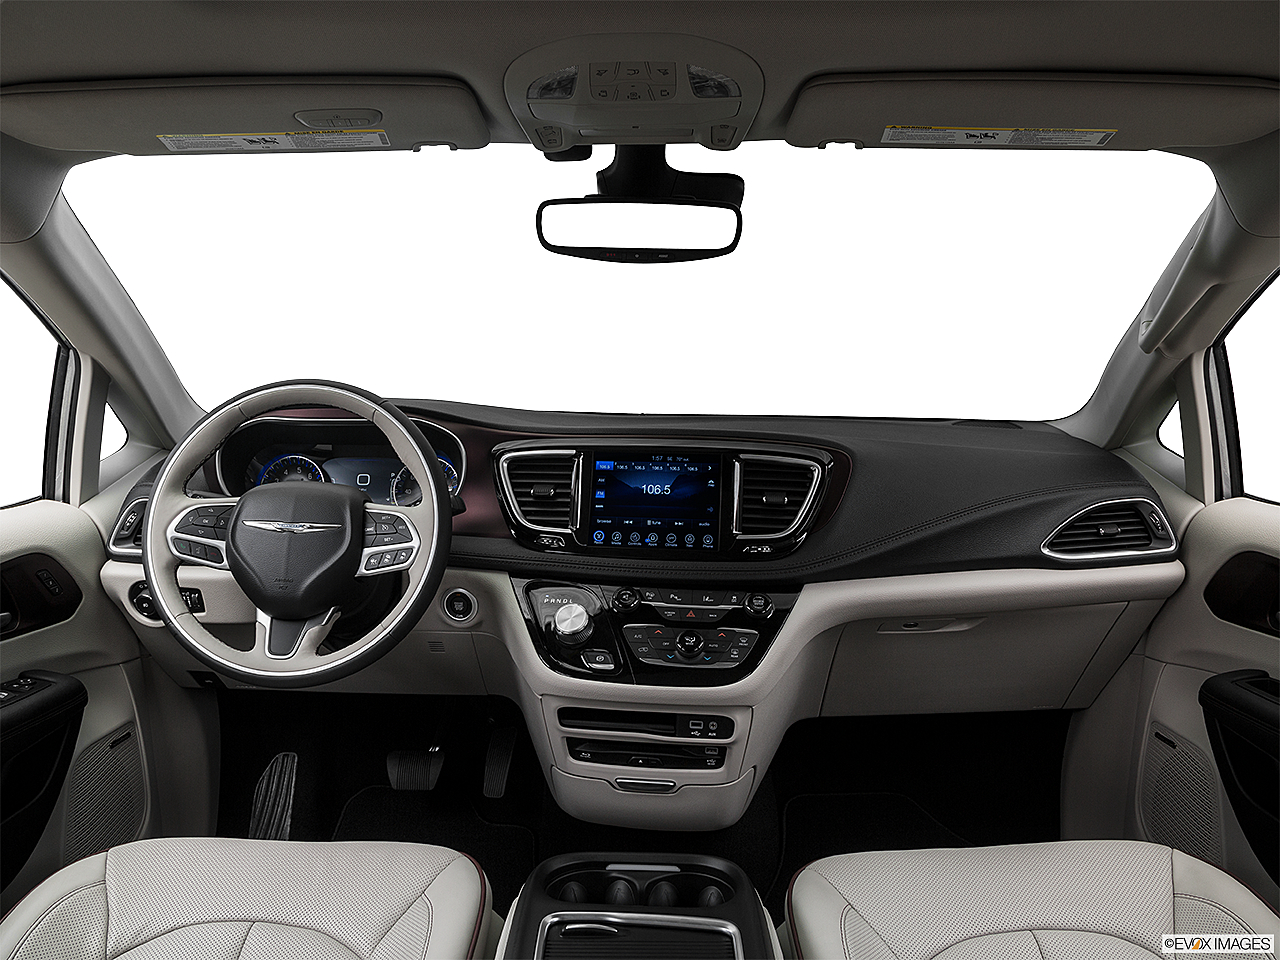 2019 Chrysler Pacifica Limited, centered wide dash shot